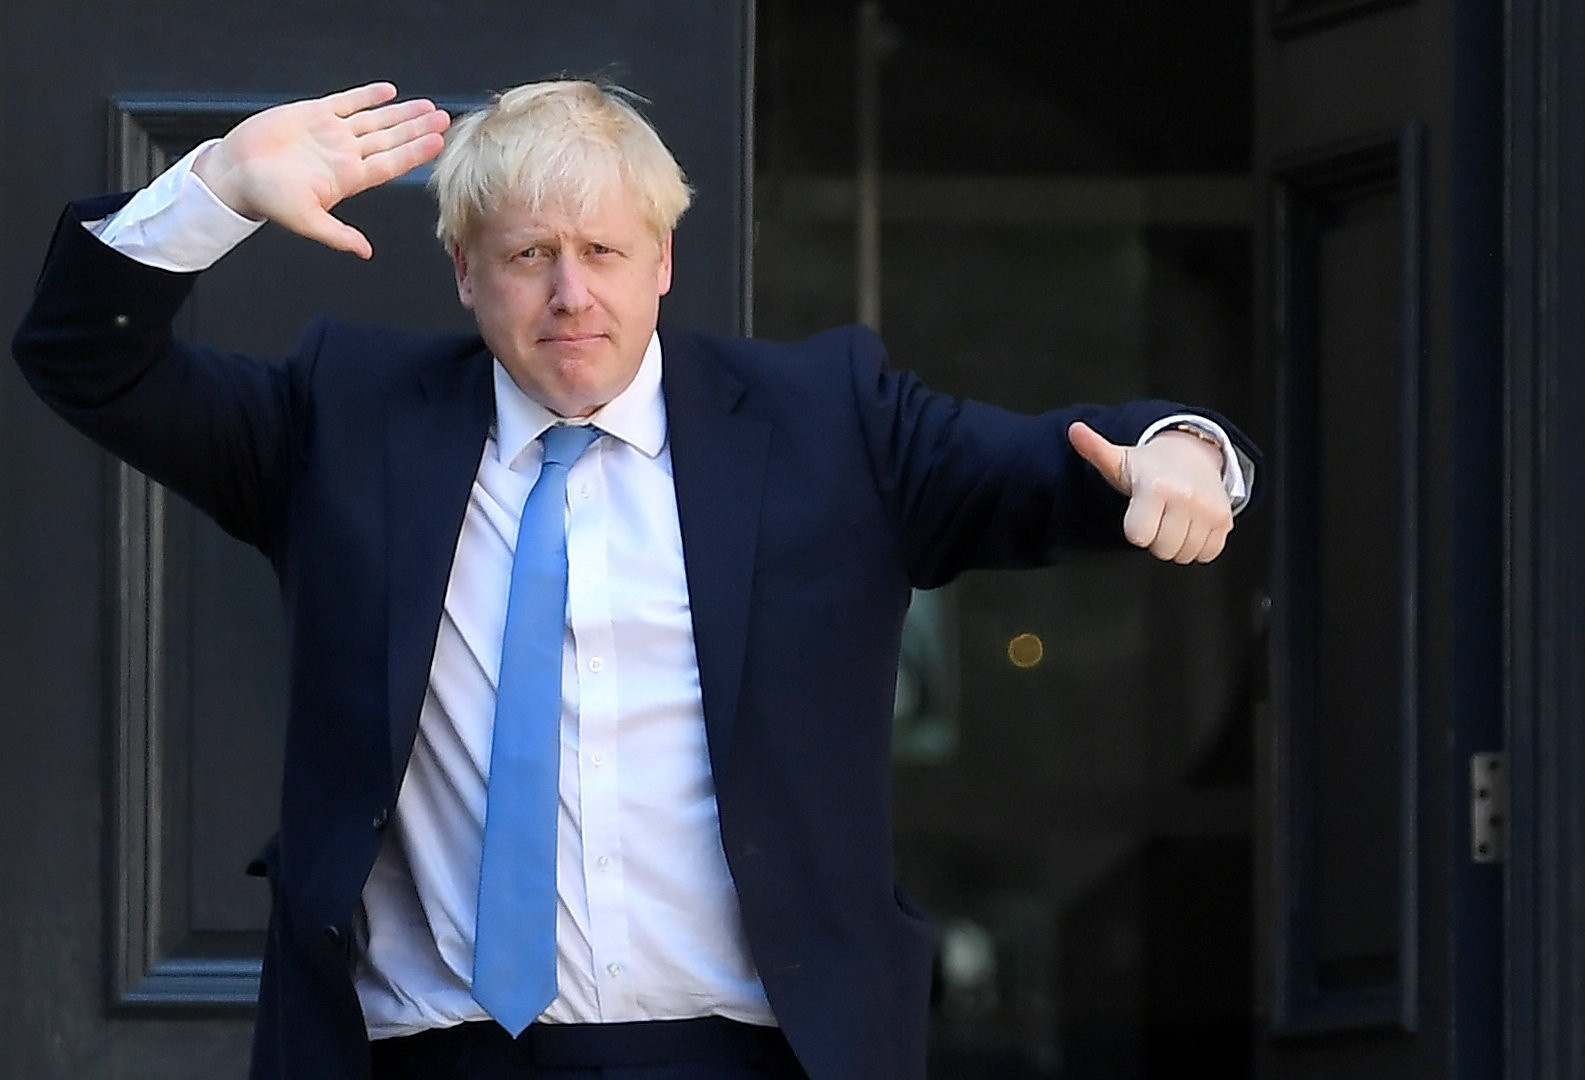 British Prime Minister Boris Johnson discharged from hospital